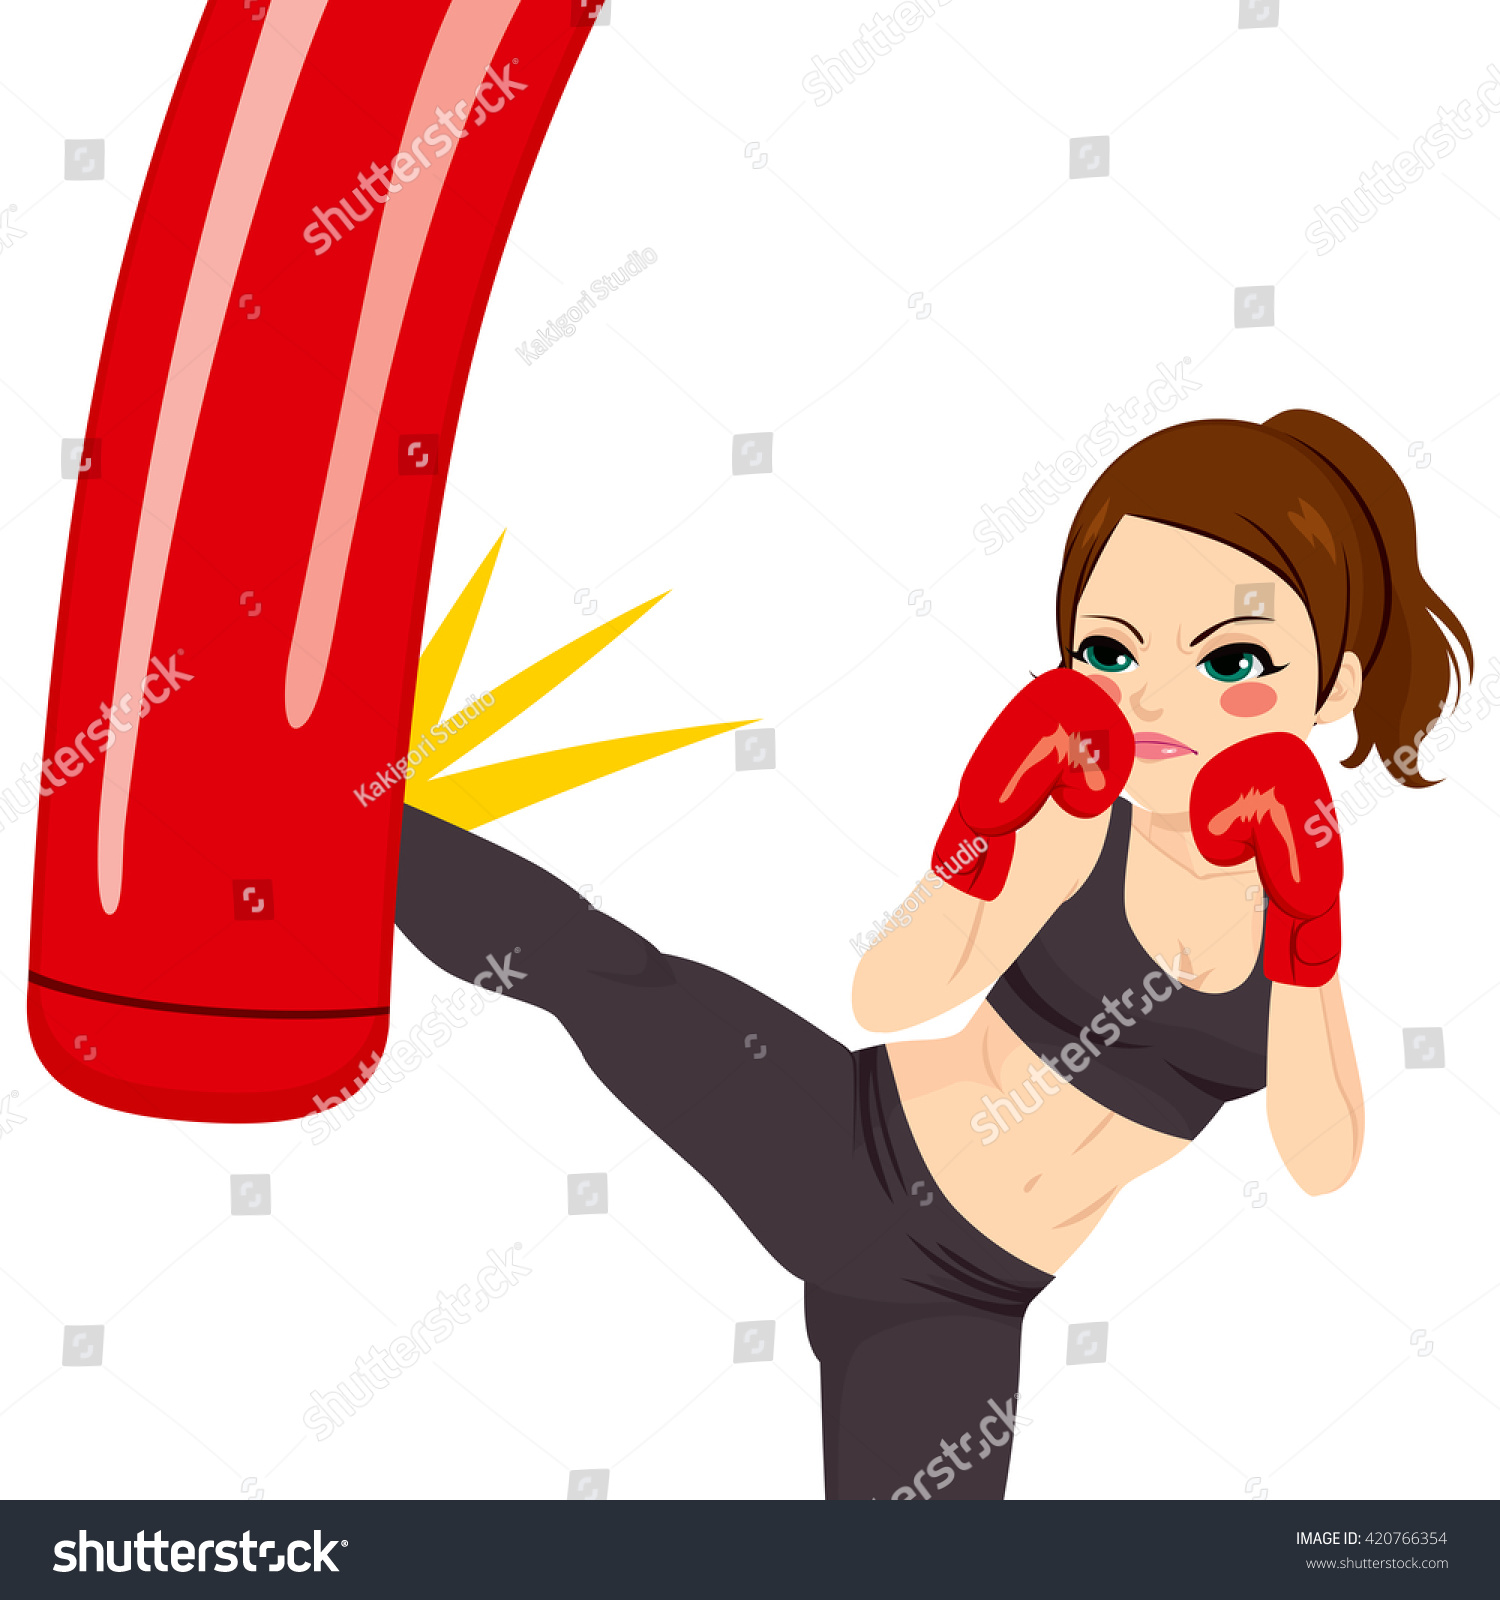 punching bag clipart - photo #29